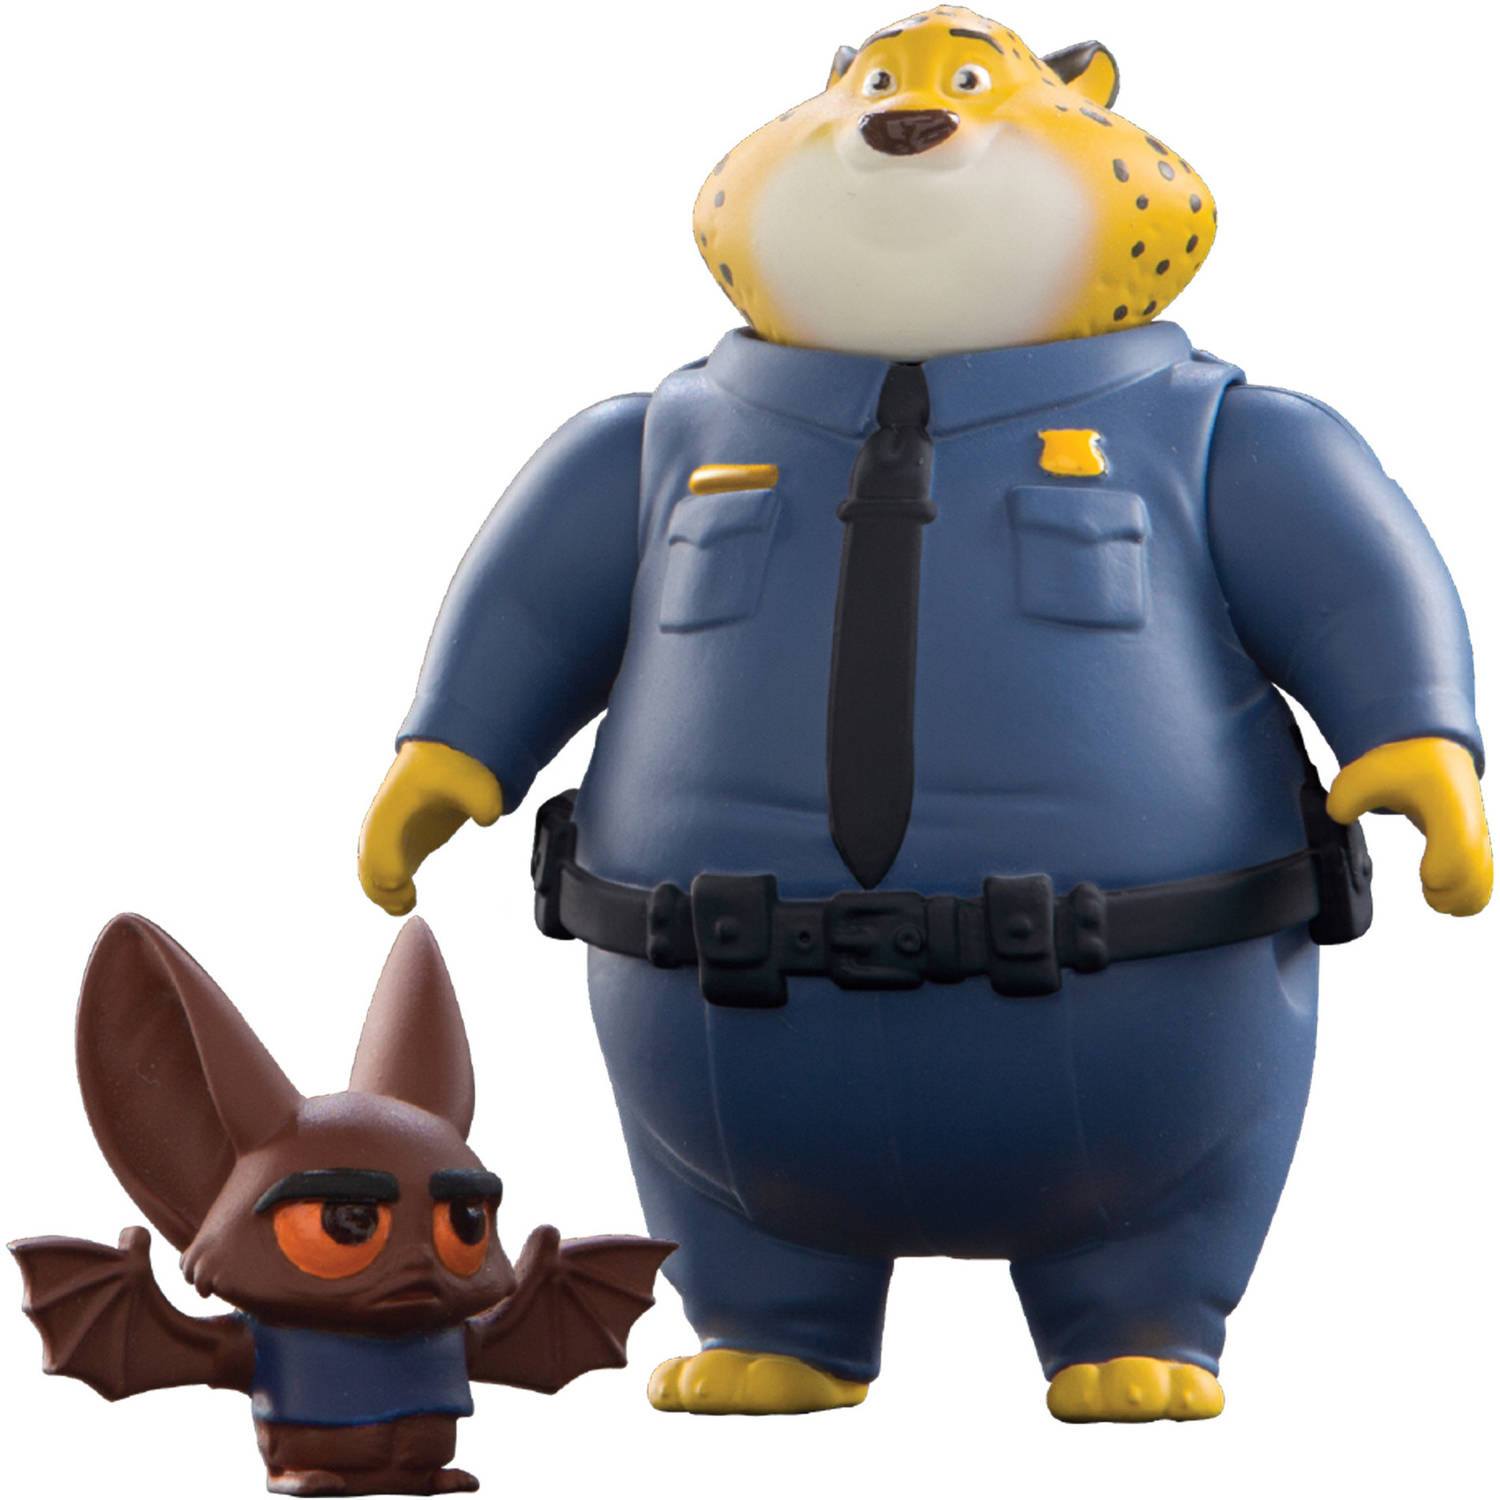 Zootopia Clawhauser and Bat Eyewitness Small figures